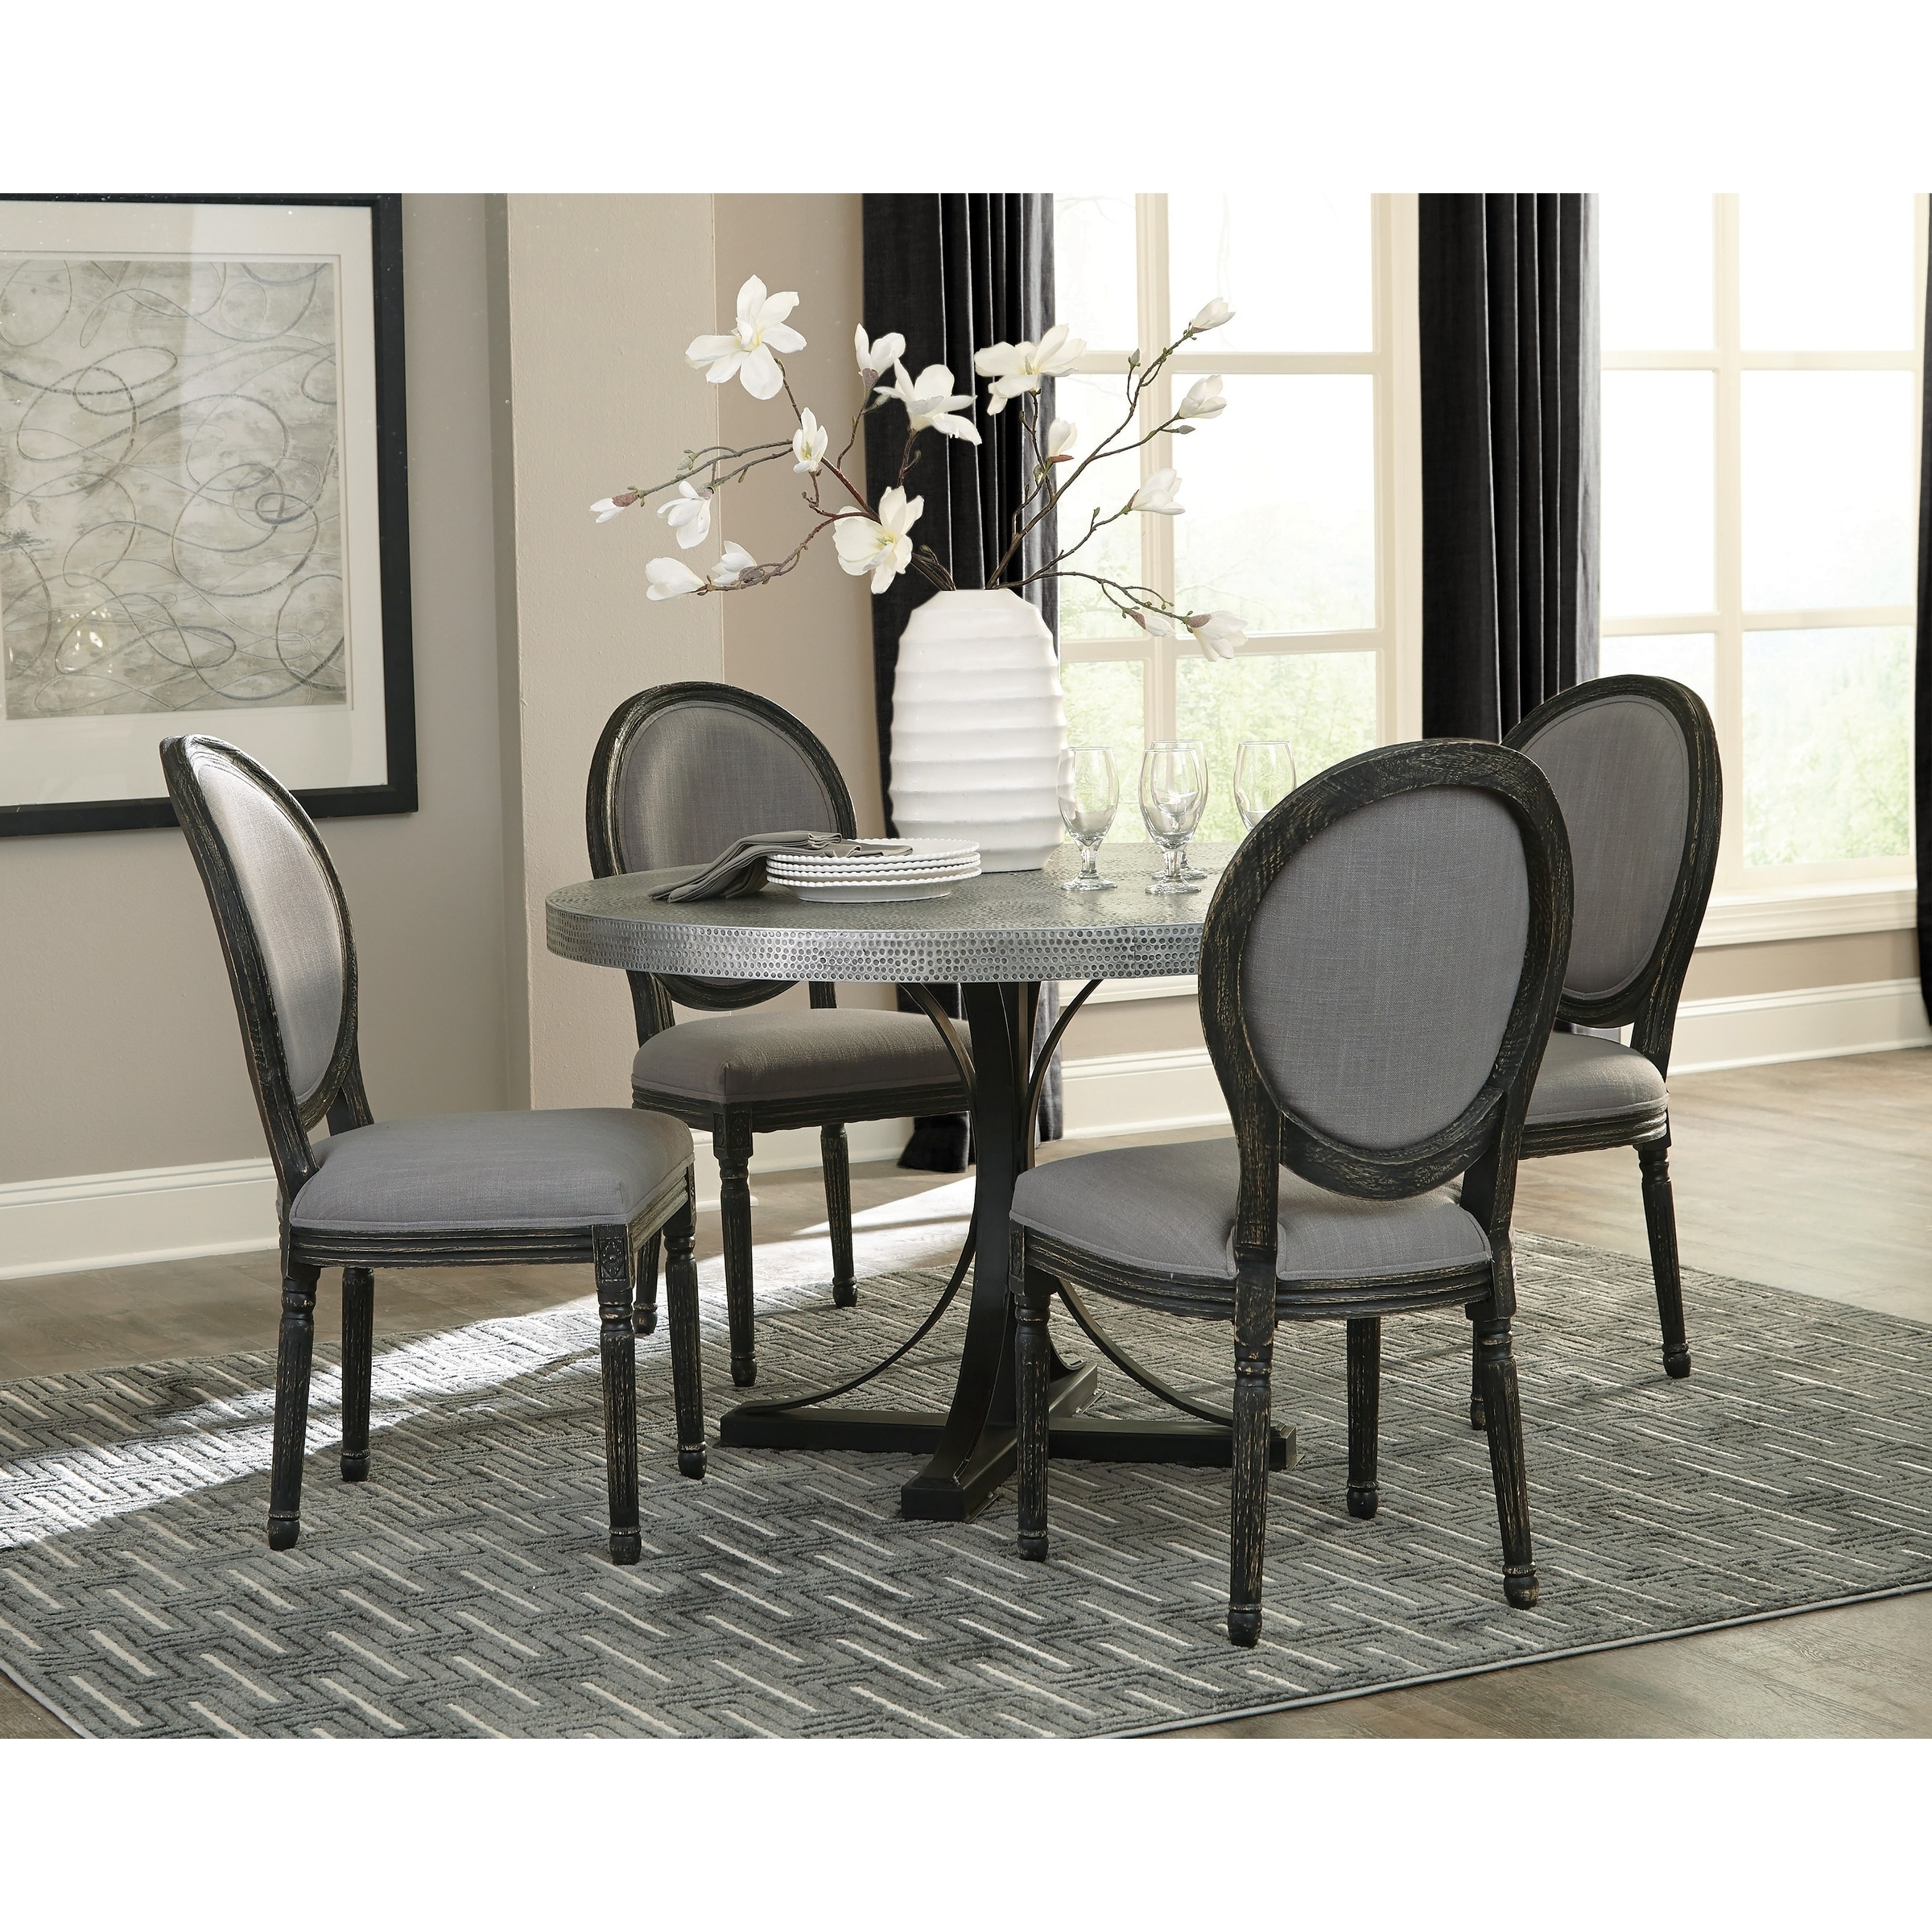 Terrific Francois Bohemian Style Oval Back Dining Chairs Set Of 2 Cjindustries Chair Design For Home Cjindustriesco